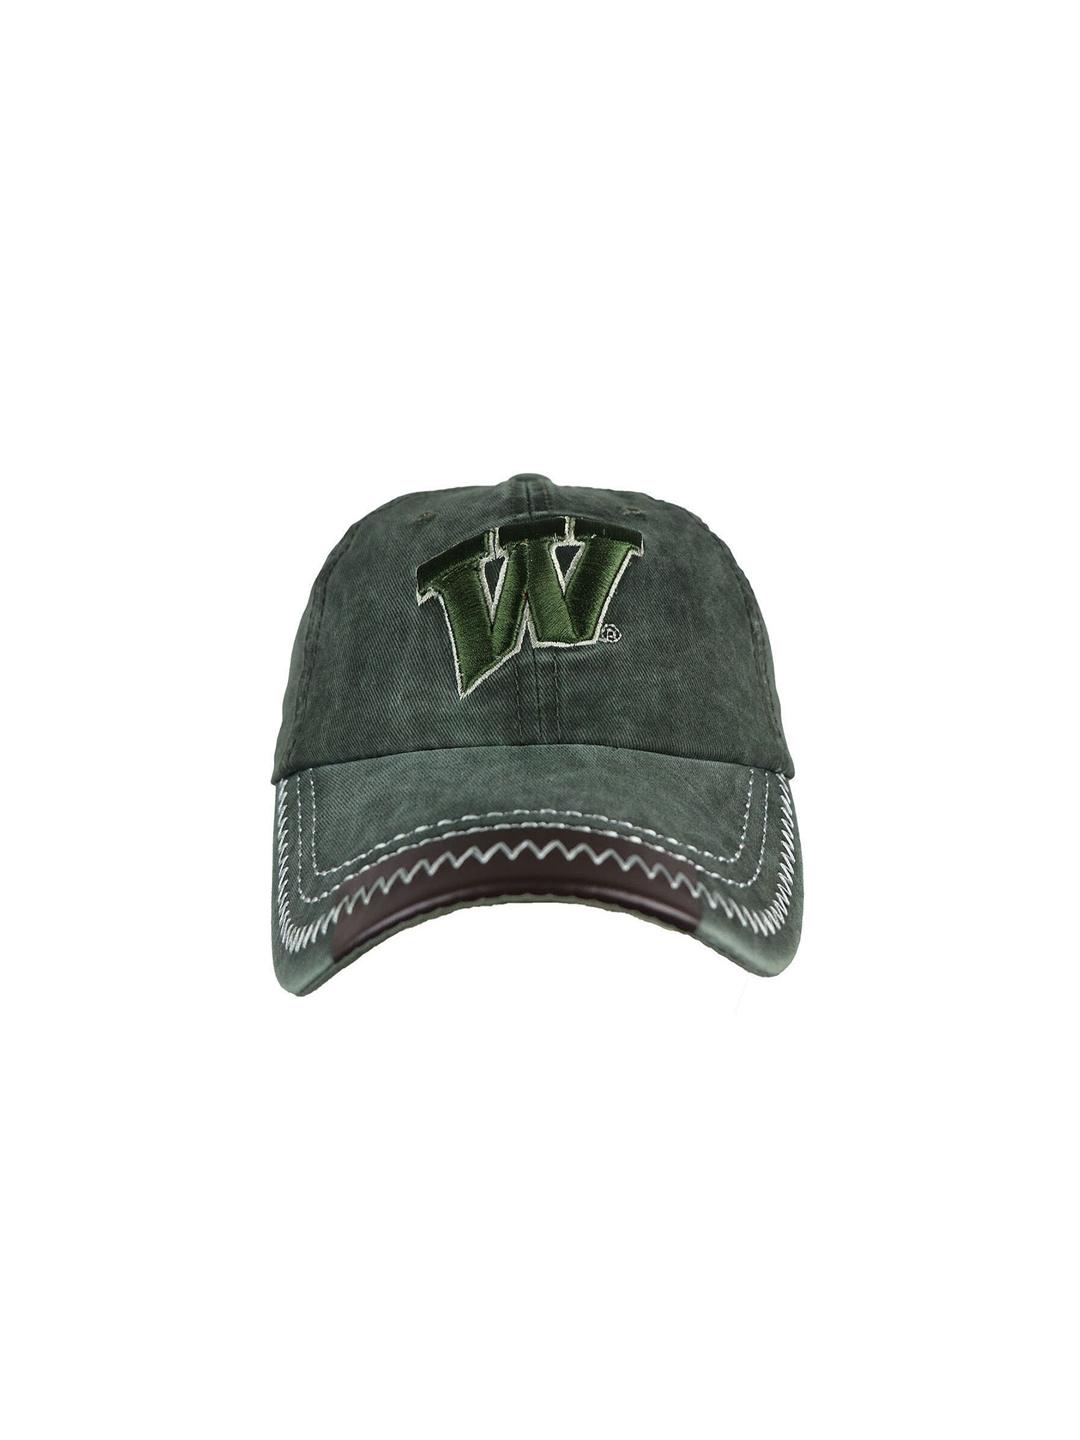 iSWEVEN Unisex Olive Green Embroidered Snapback Cap